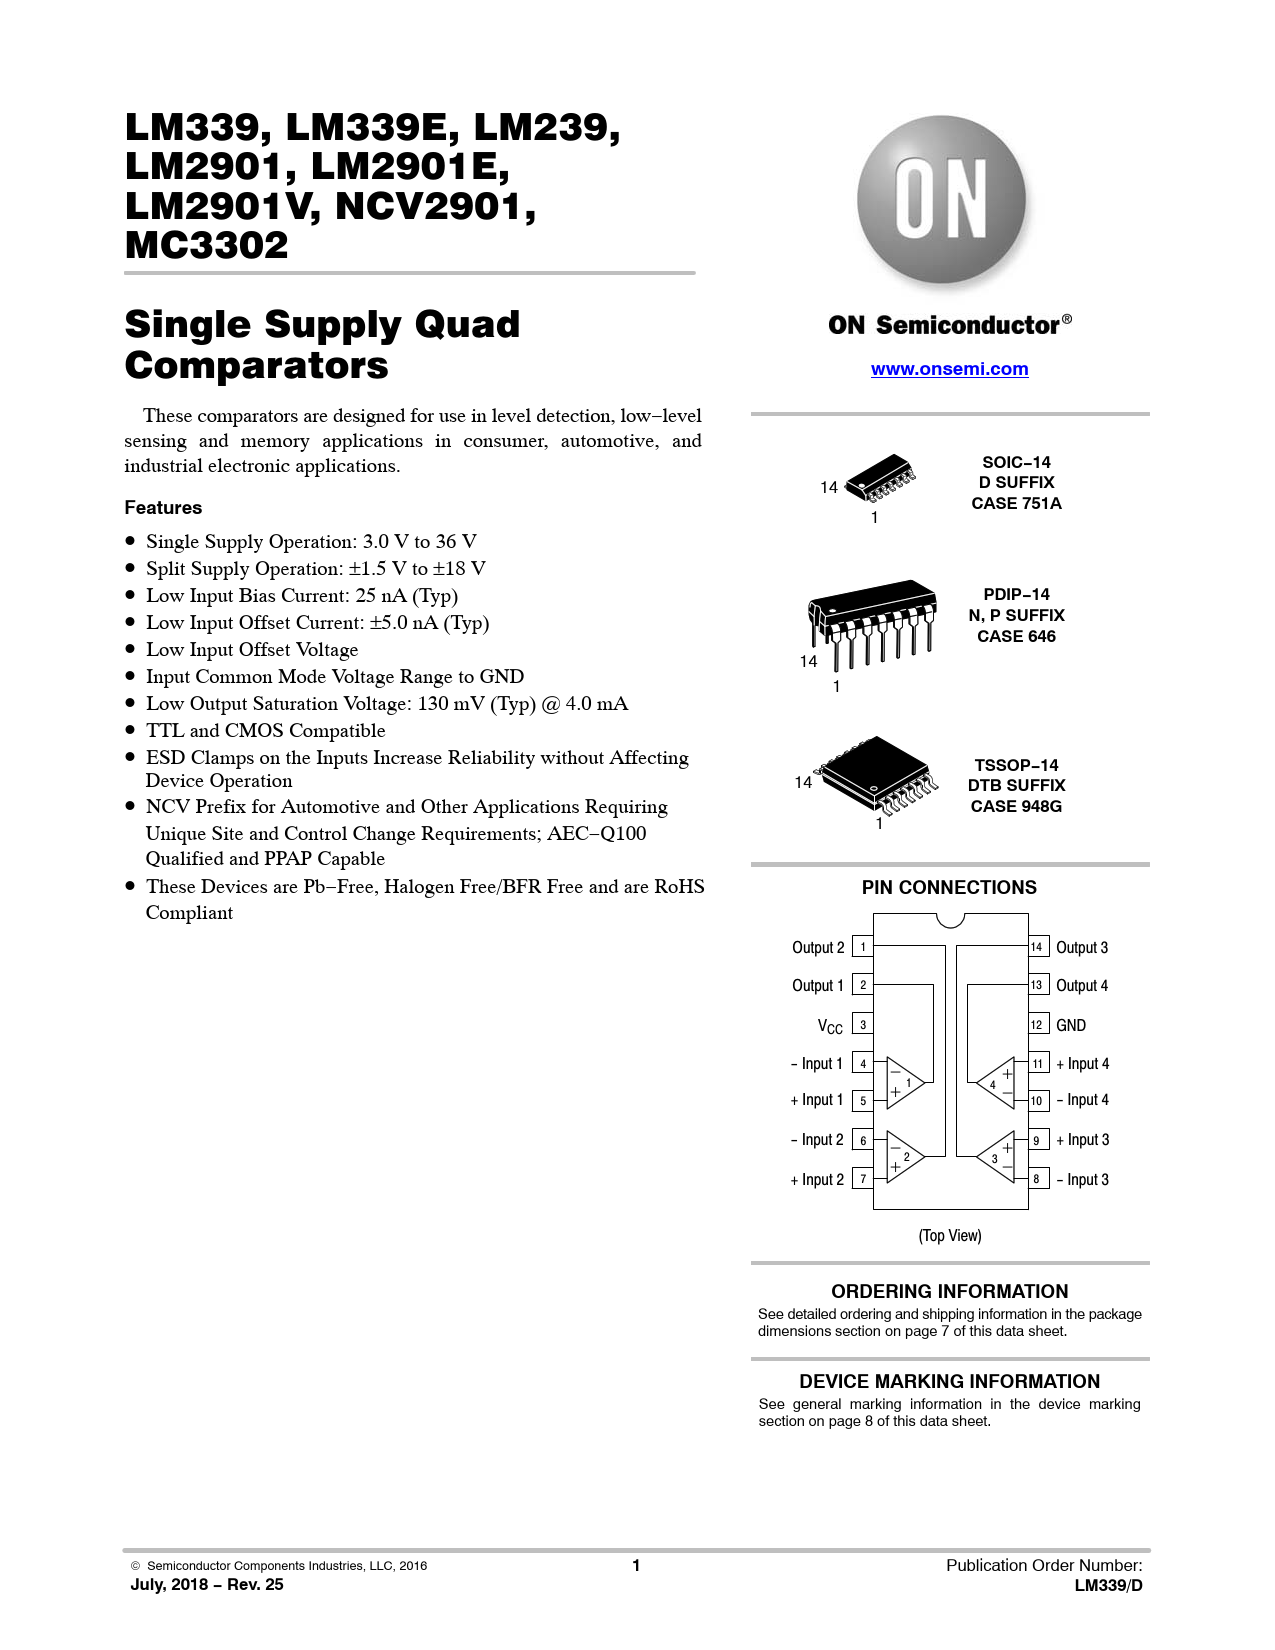 Datasheet LM339, LM339E, LM239, LM2901, LM2901E, LM2901V, NCV2901, MC3302 ON Semiconductor, Revision: 25